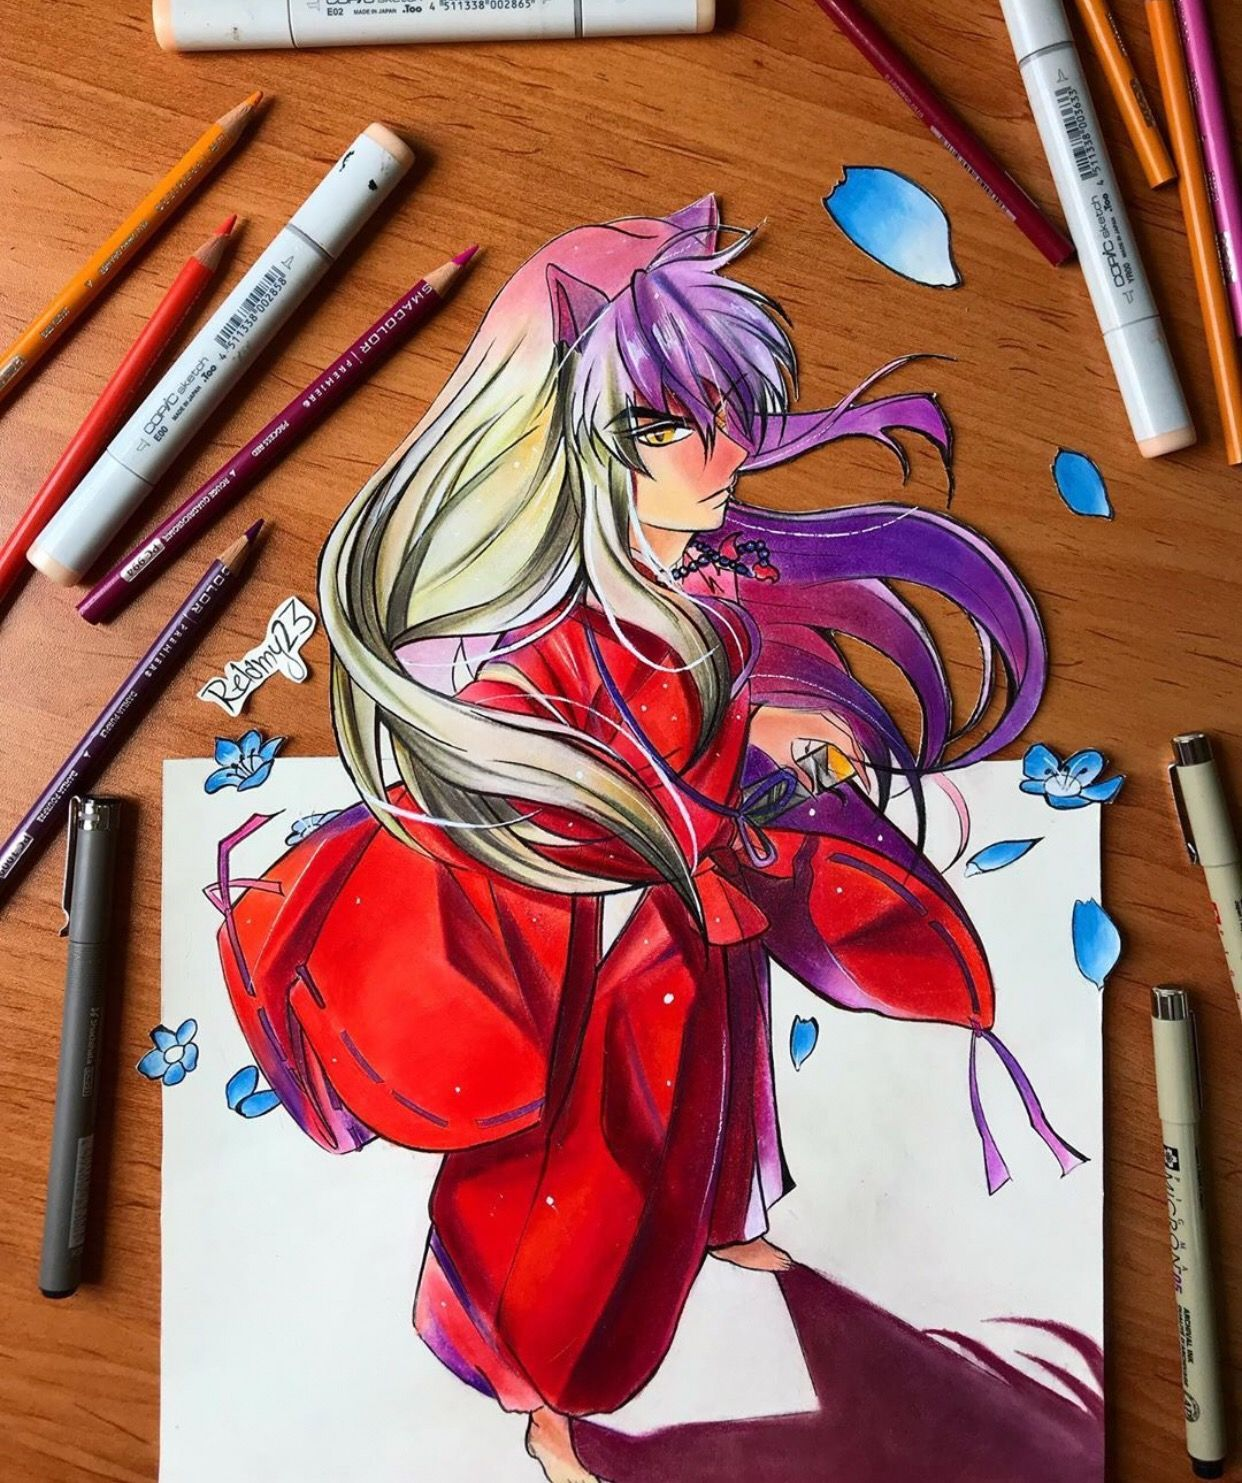 Inuyasha By Relamy23 Visit Our Website For More Anime And Animeart Manga Kagome Don T Forget To Follow Our Boards For Anime Art Anime Art